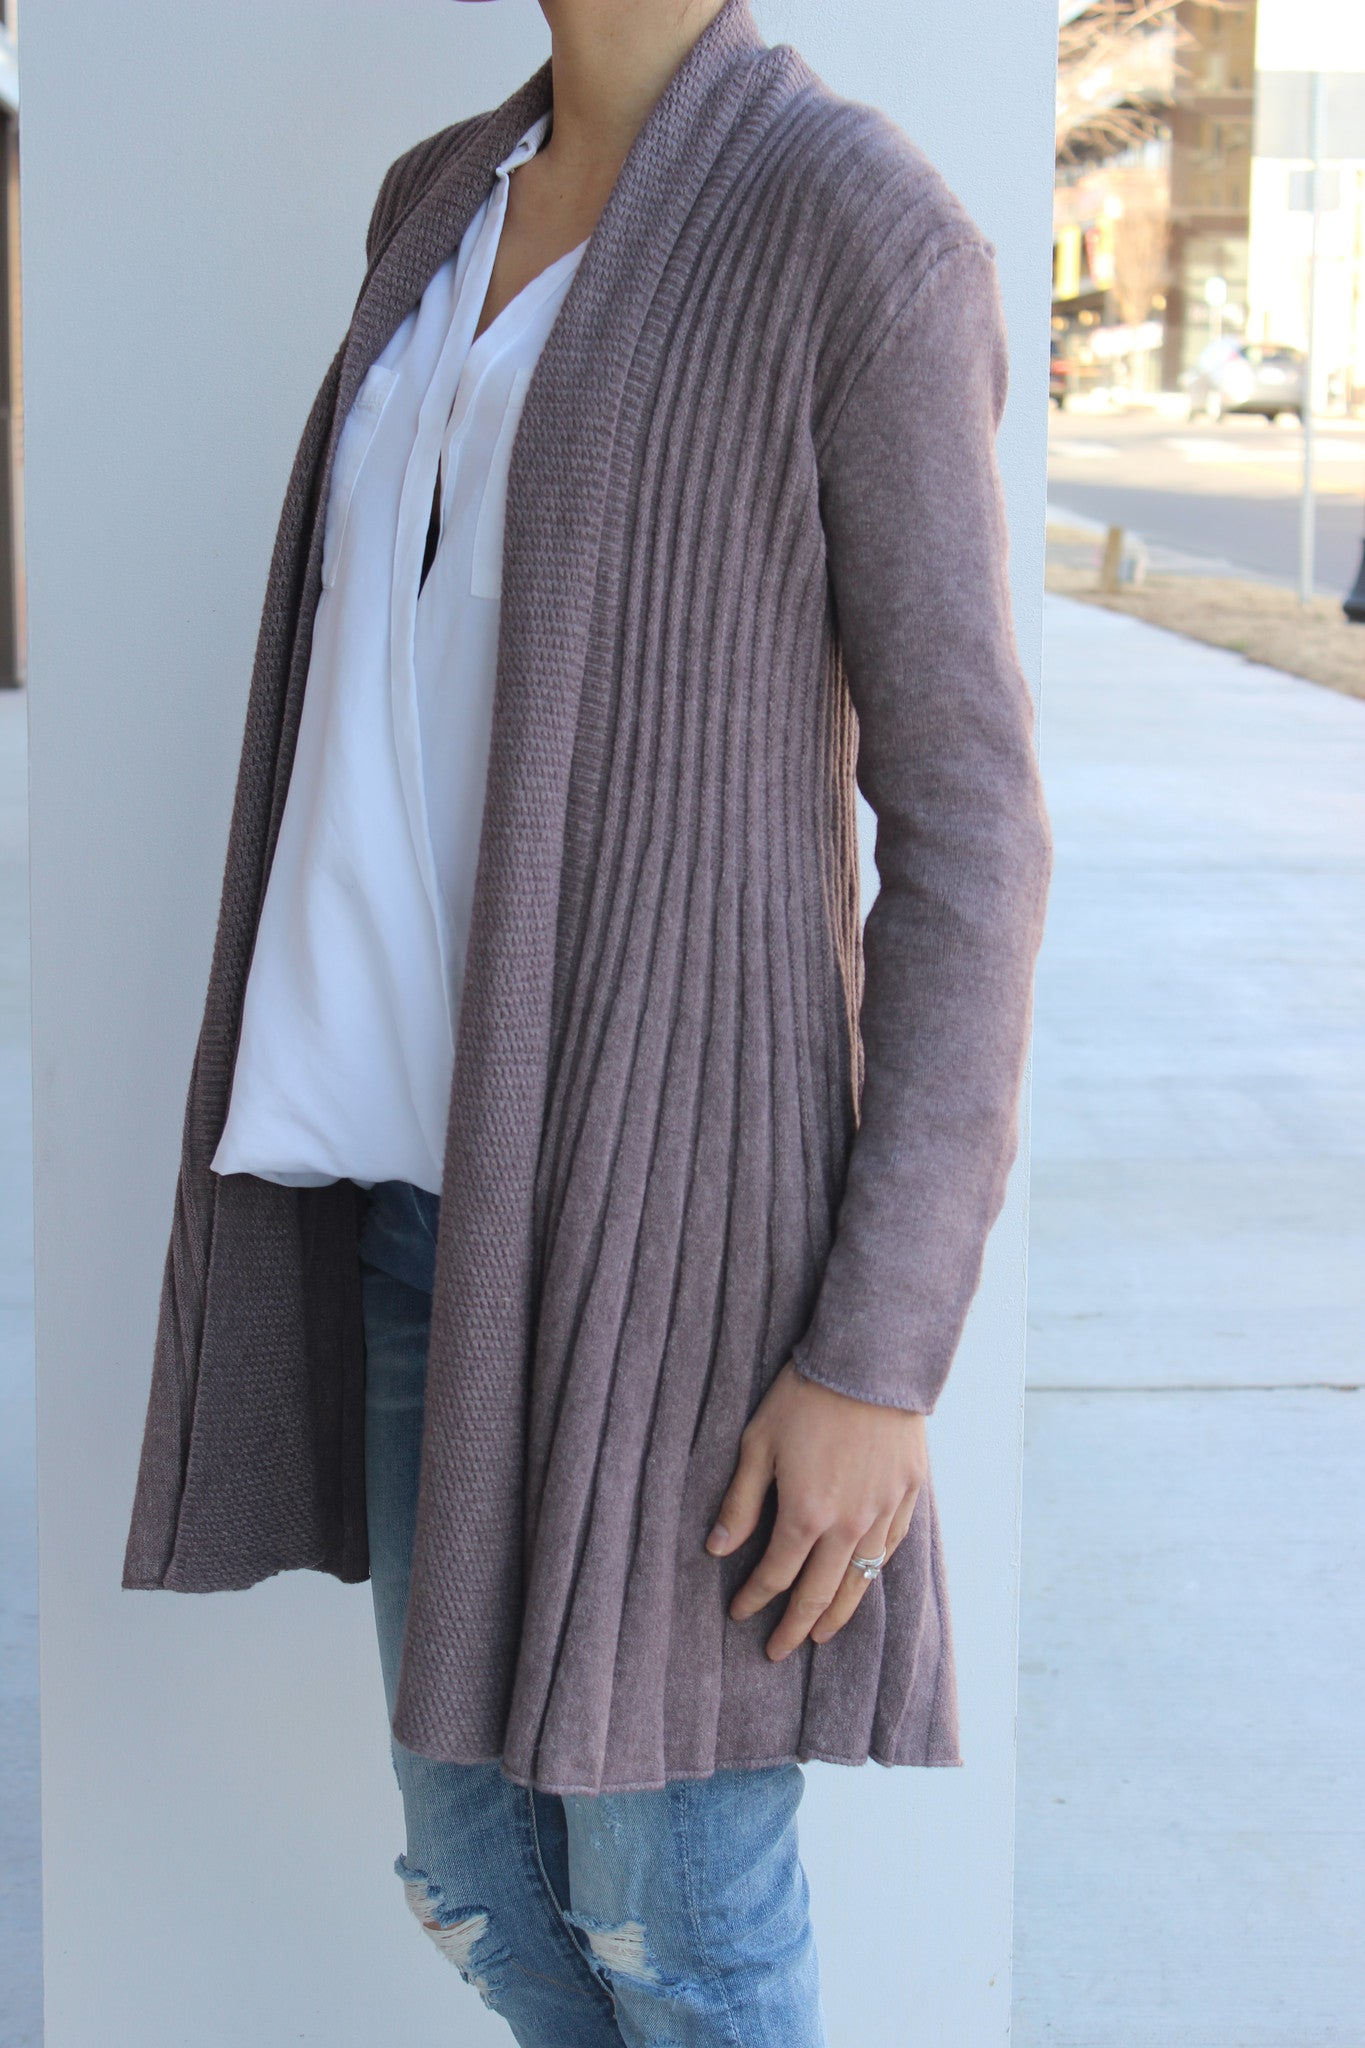 Bottom Flair Cardigan